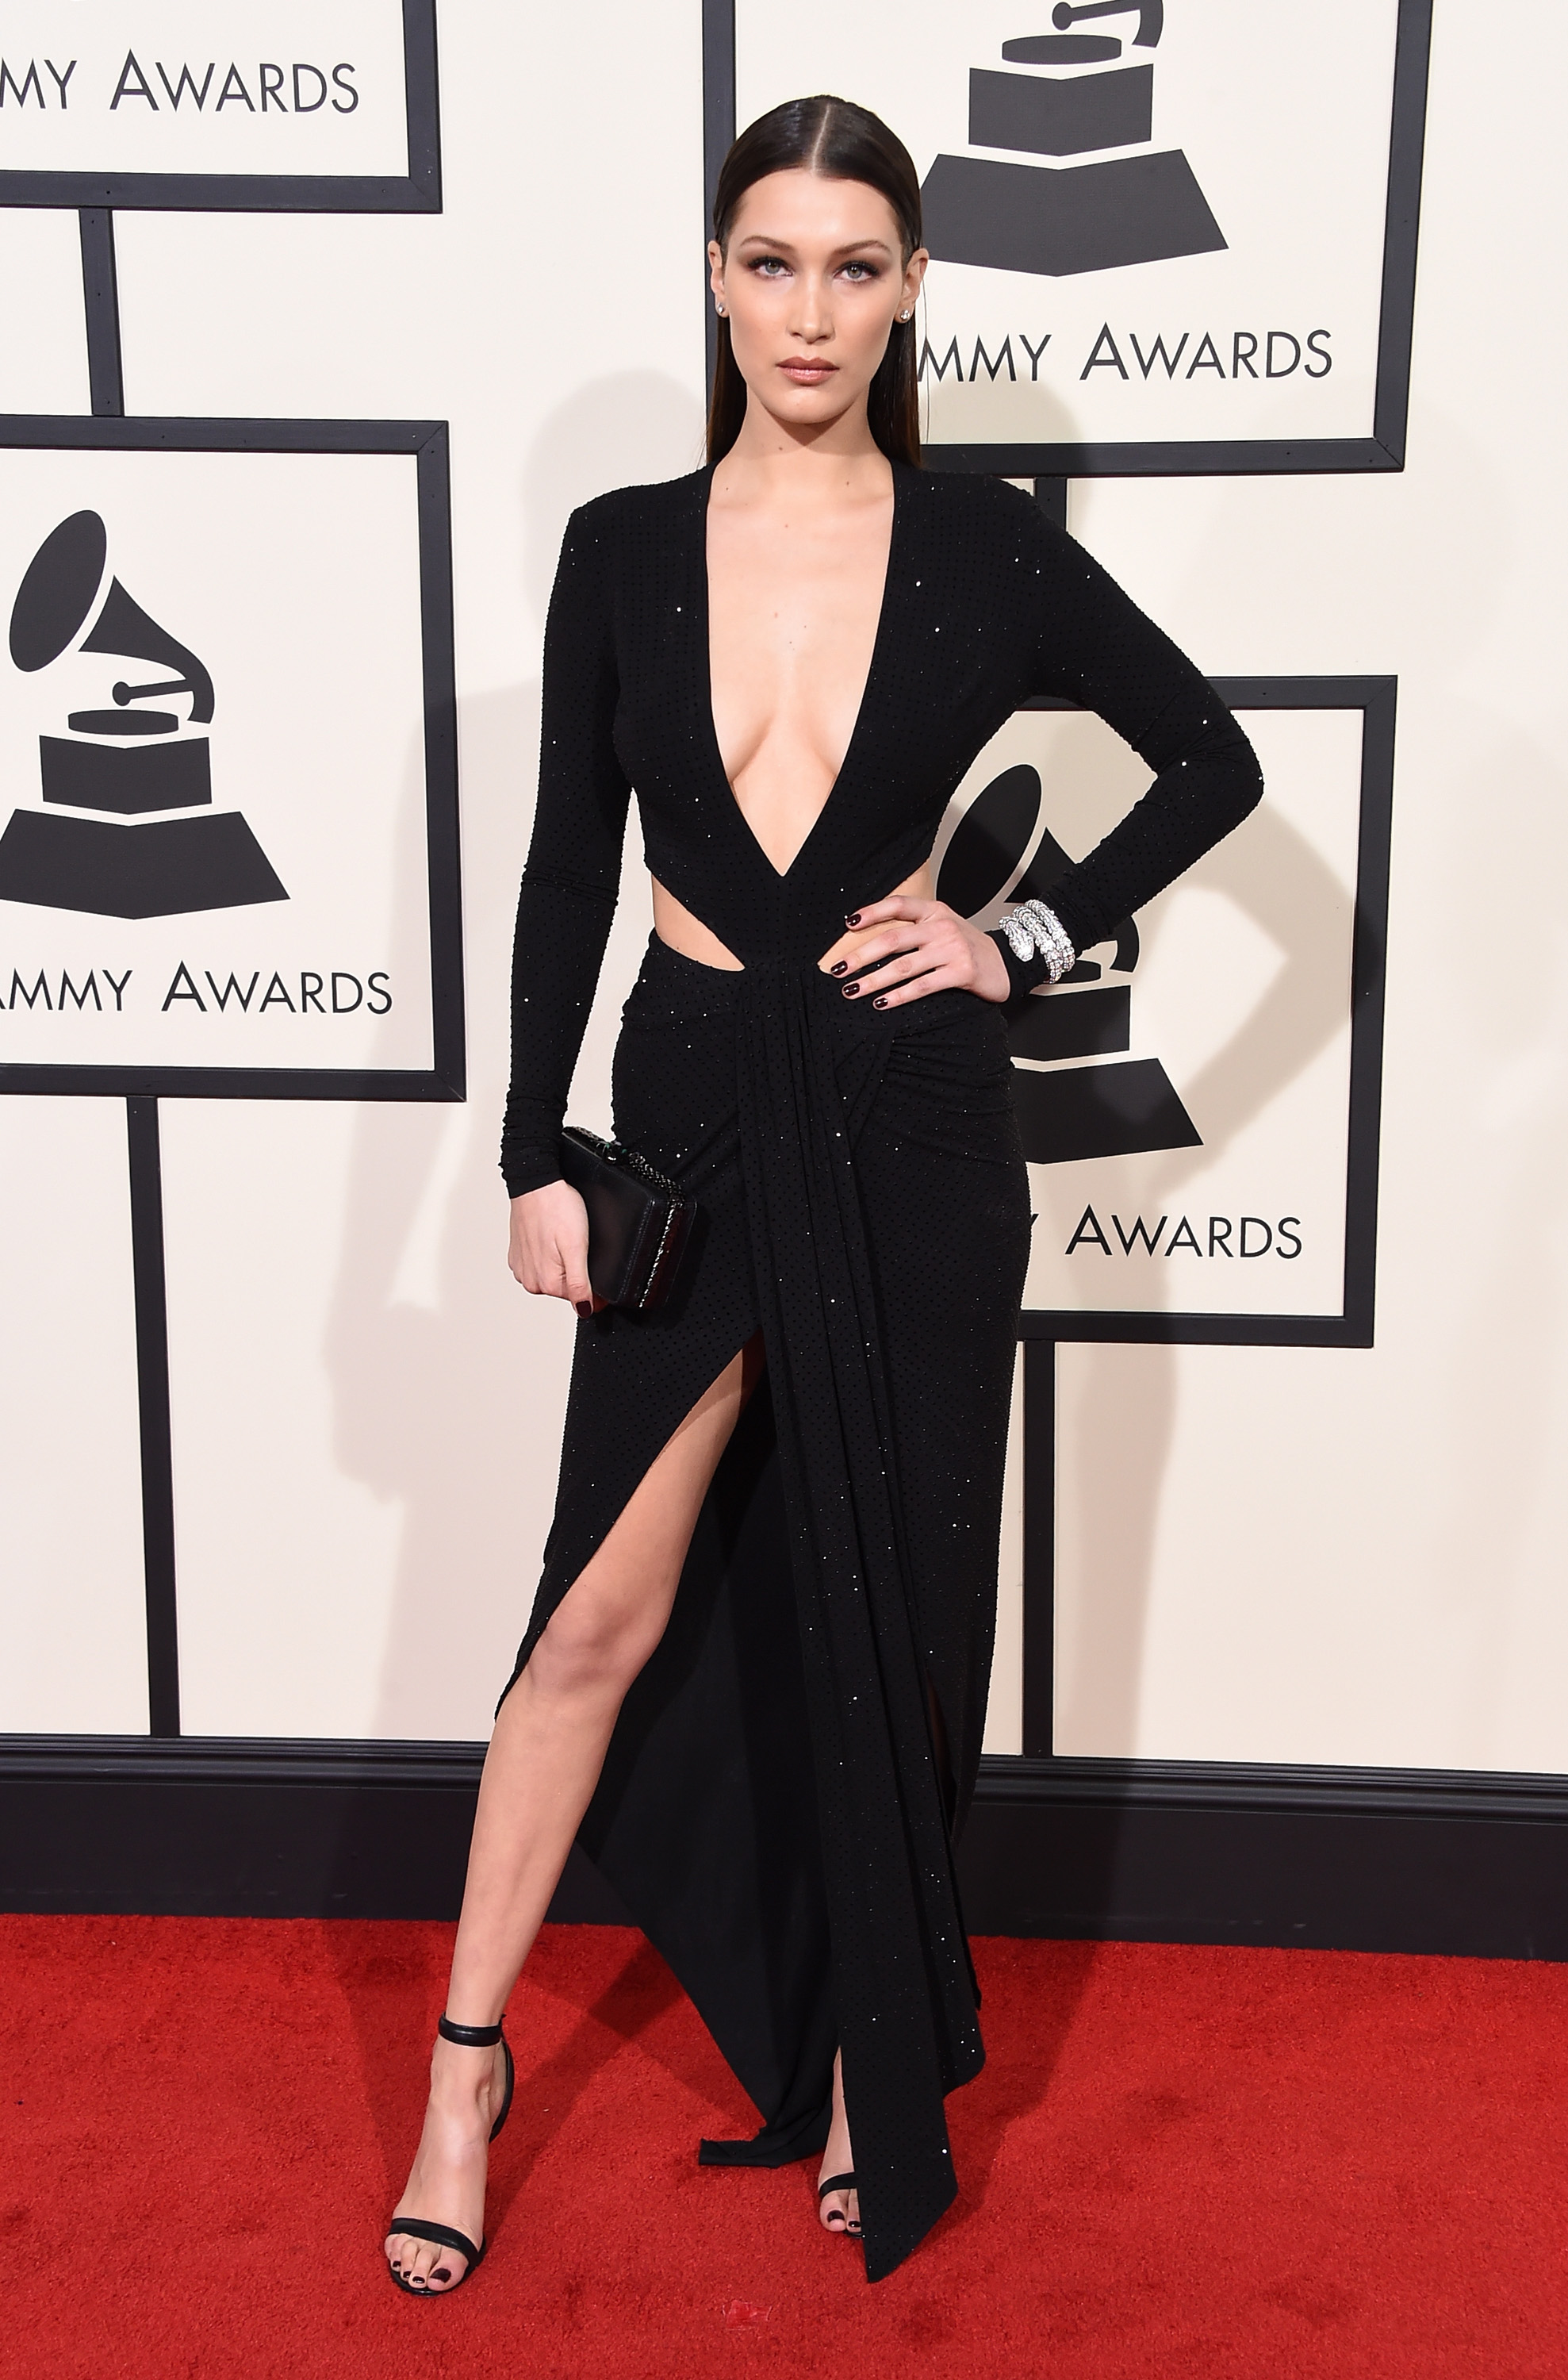 bella hadid posing on the red carpet at the grammys 2016